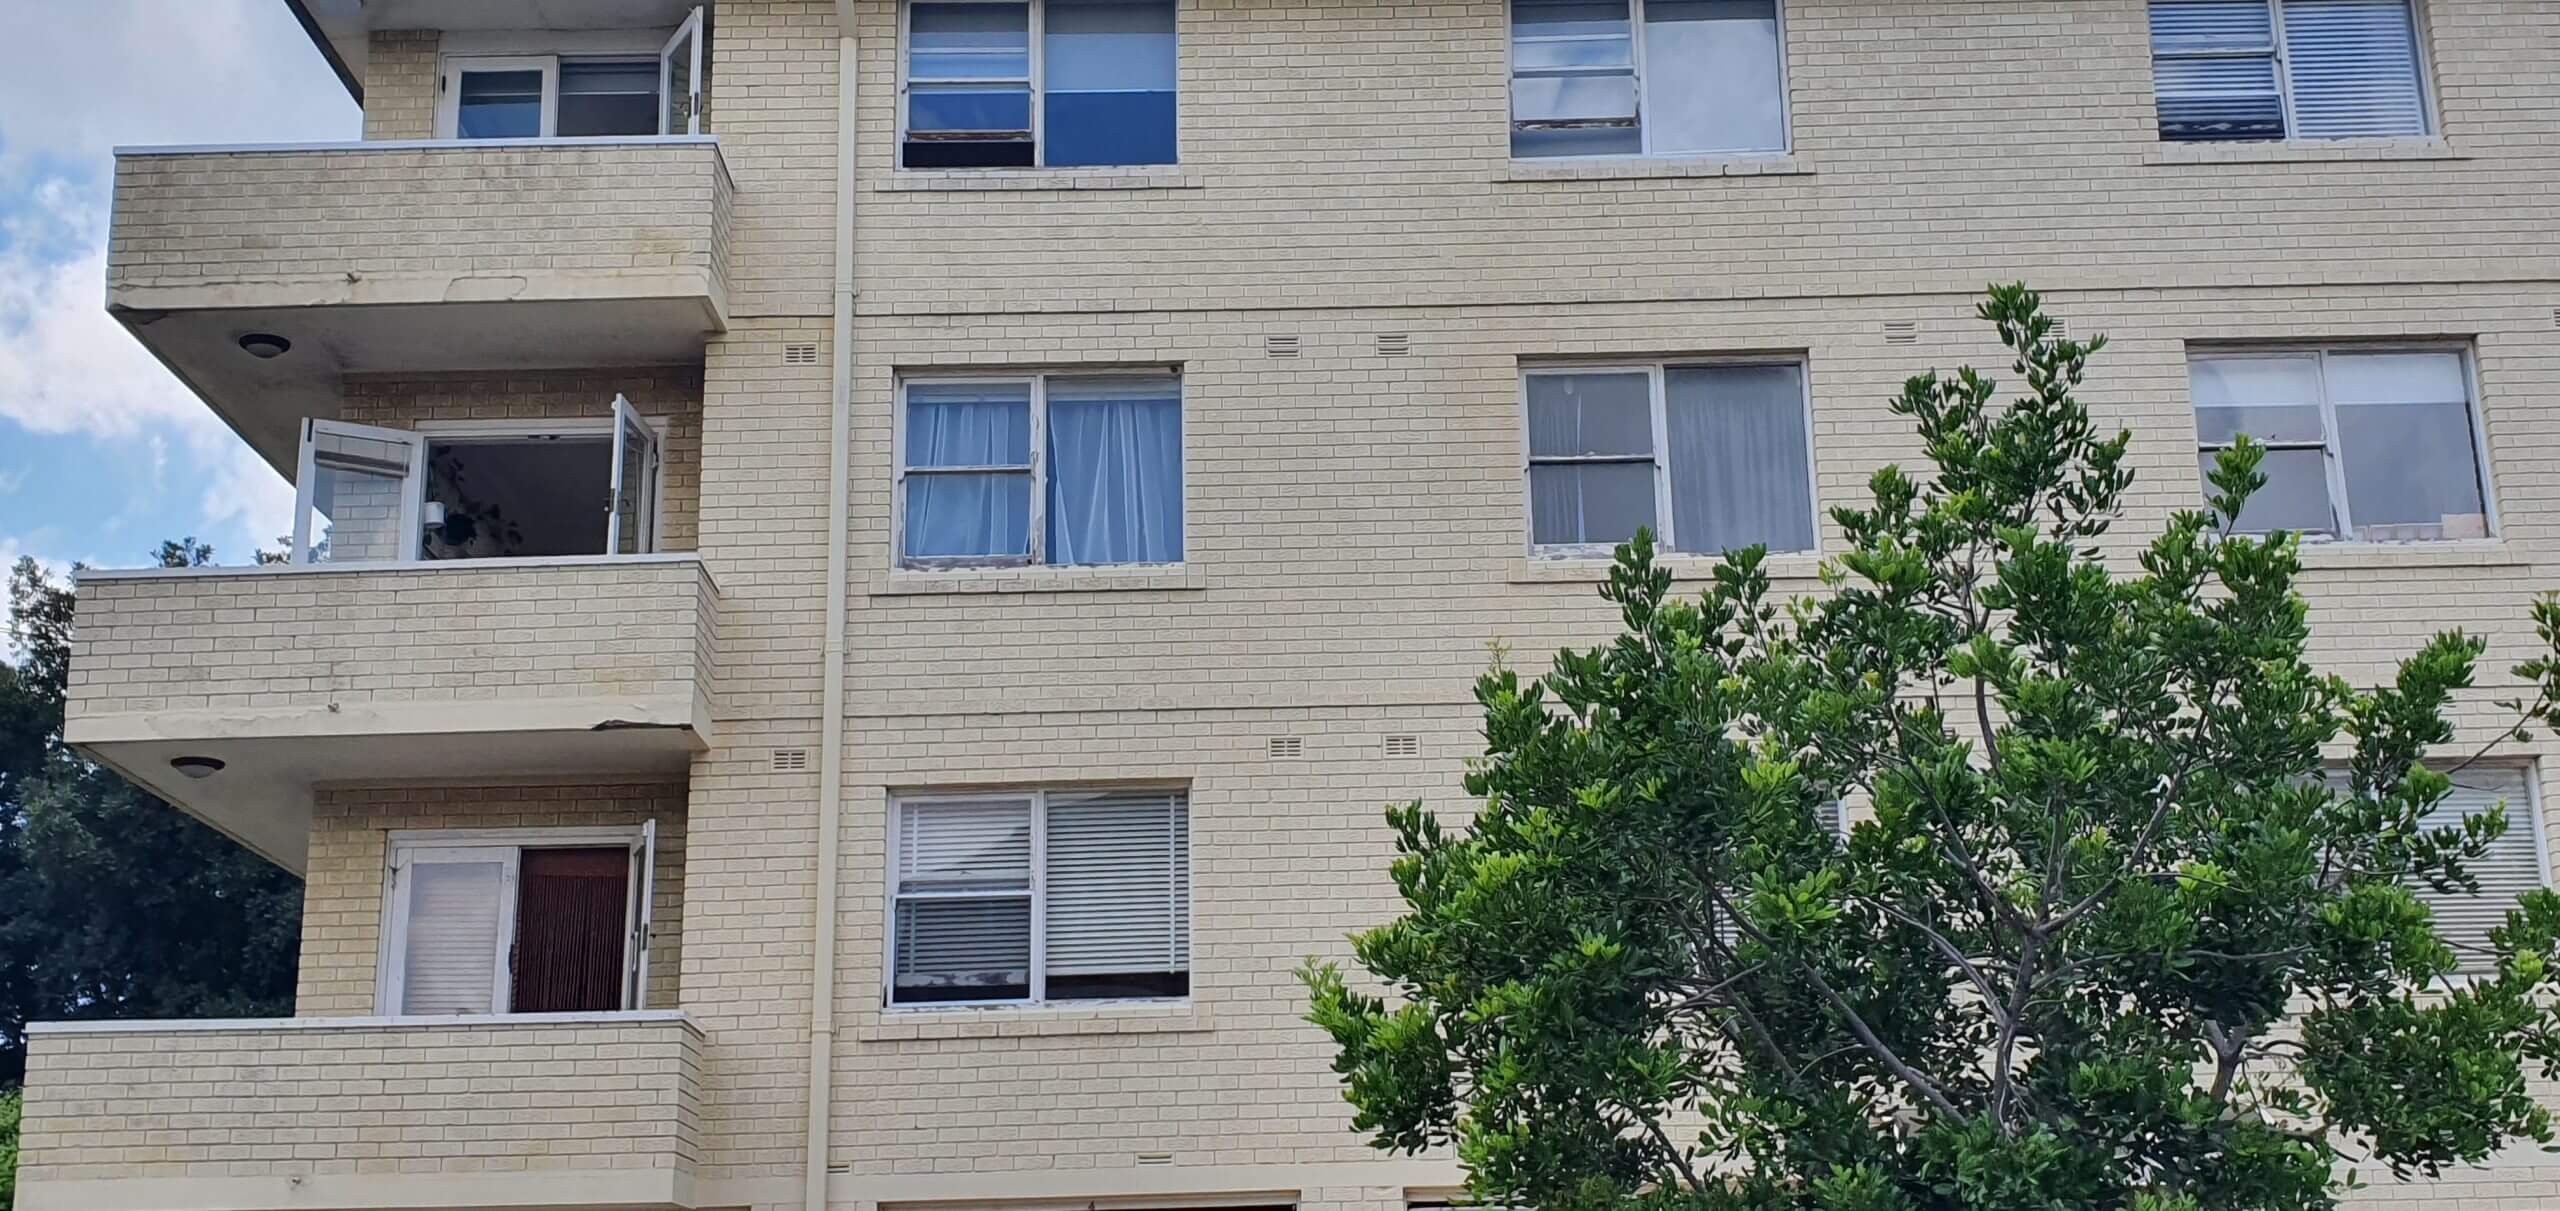 Windows And Balconies Of An Apartment Building - Façade Upgrade - Remedial Building Services